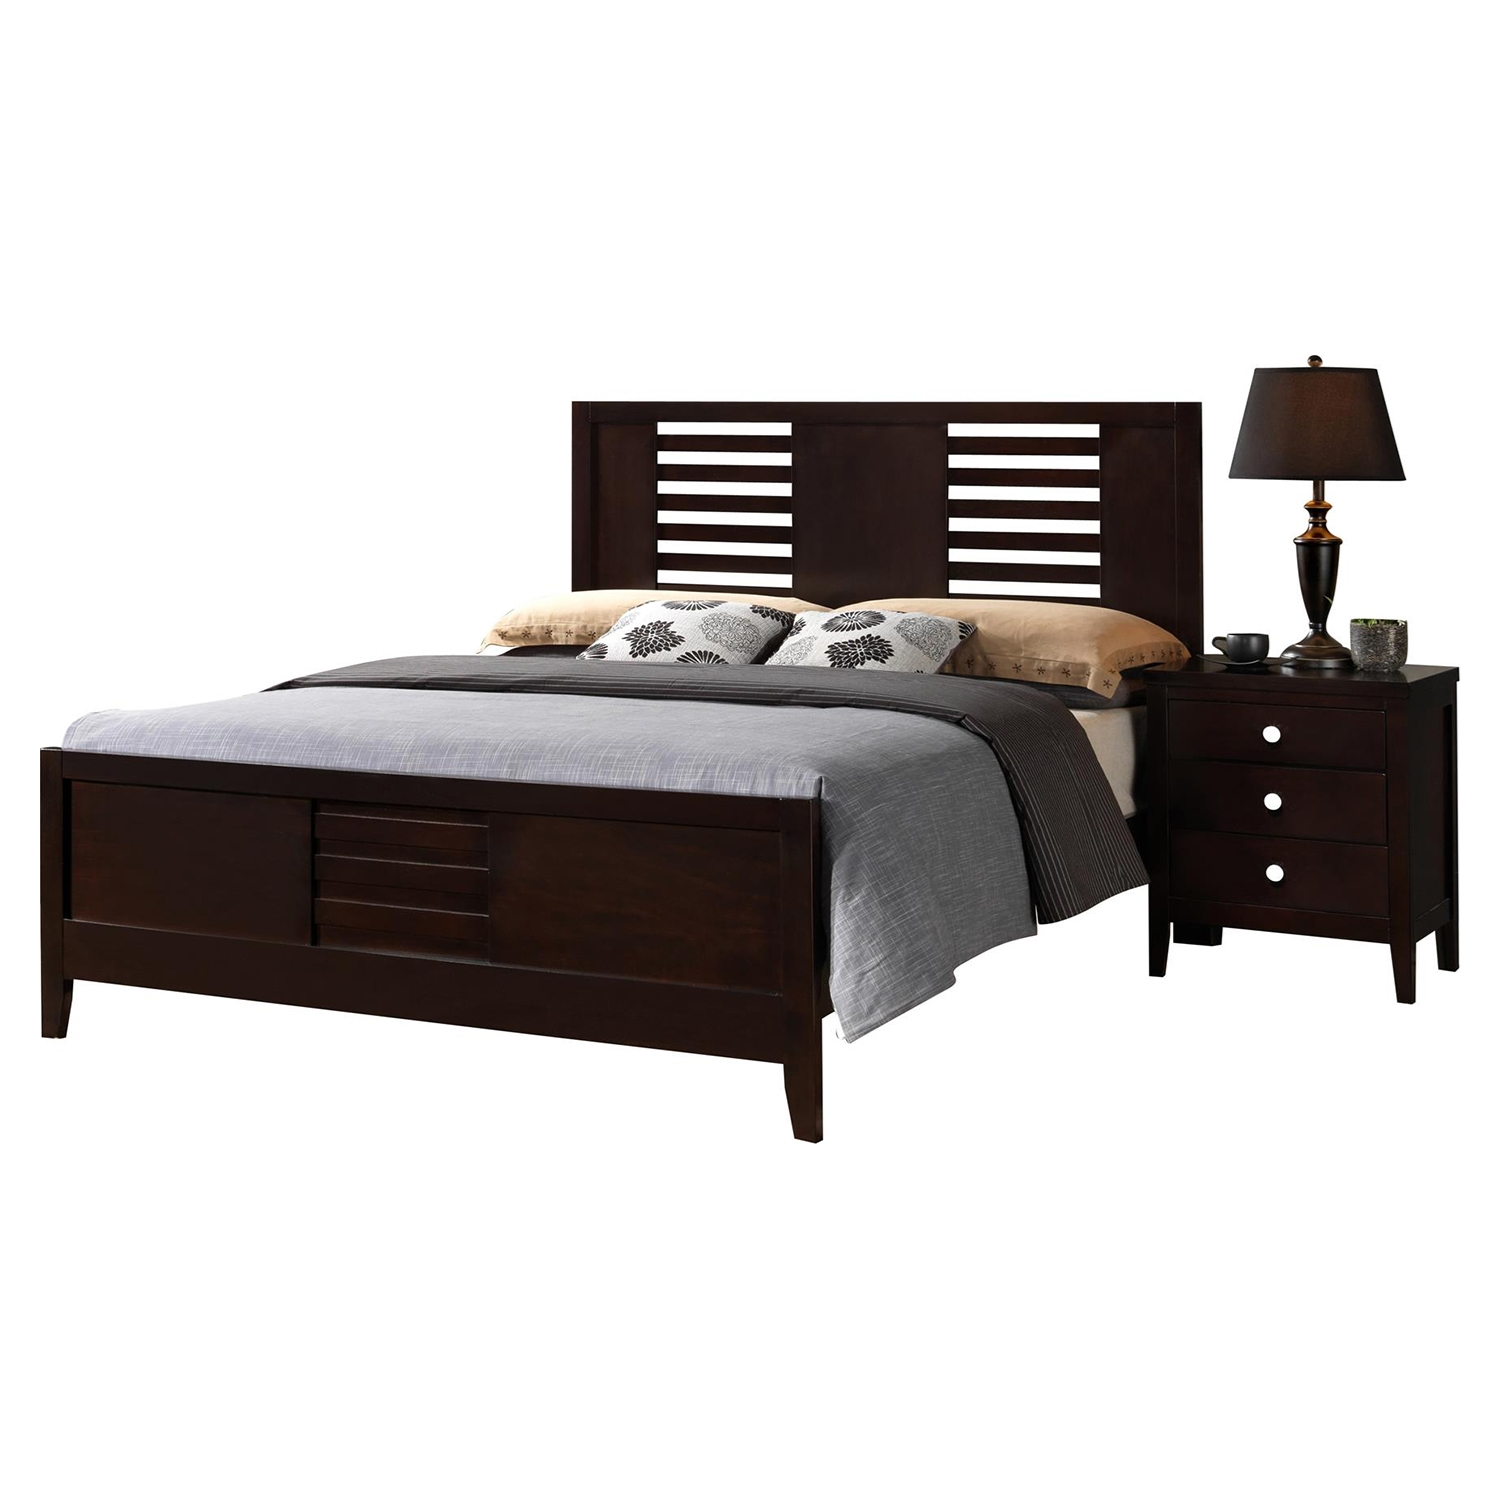 Lily Bedroom Set - Antique Black